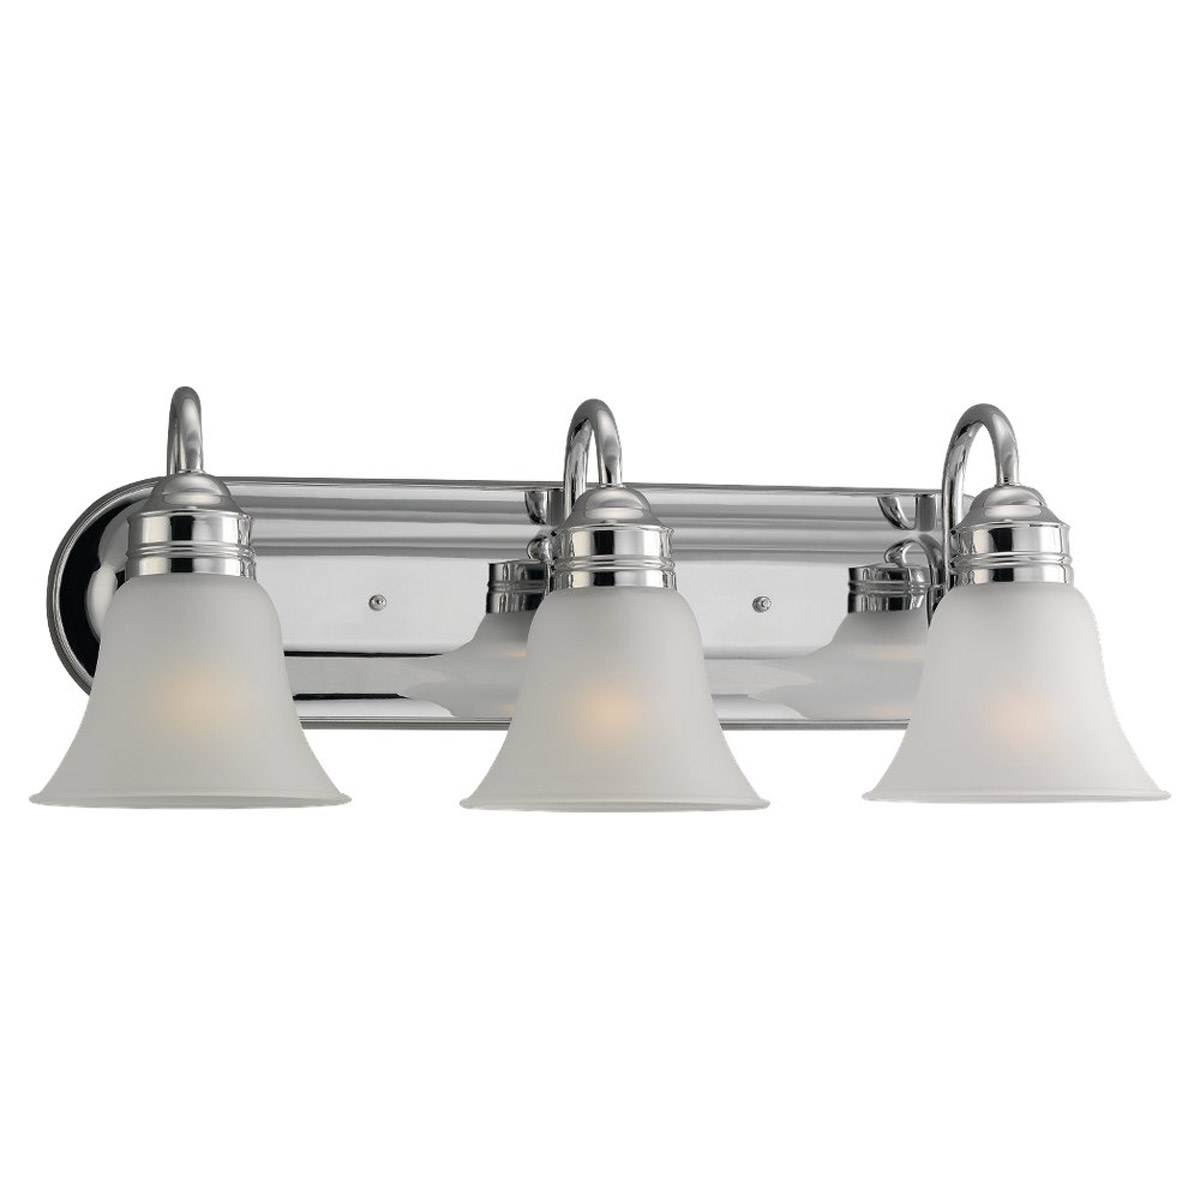 Sea Gull Lighting Gladstone 3 Light Bath Vanity in Chrome 49852BLE-05